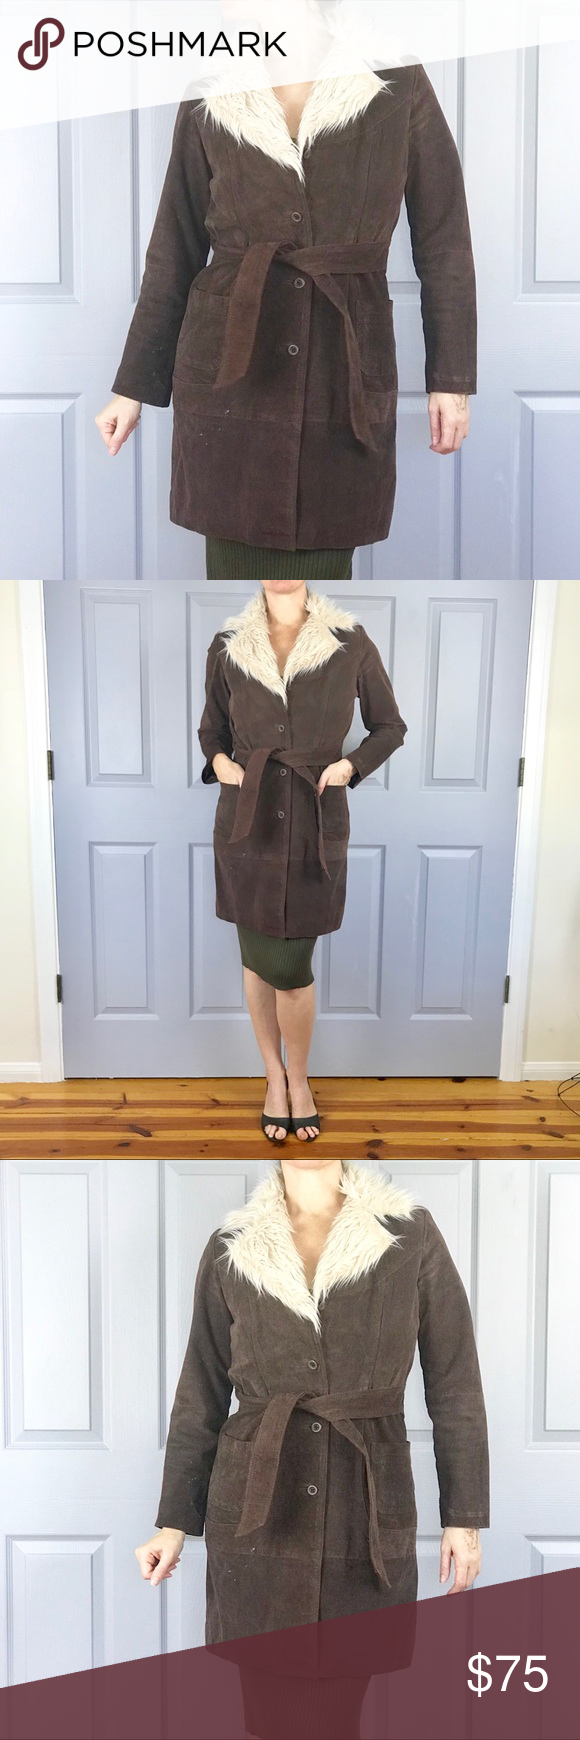 BROWN LEATHER COAT FAUX FUR JACKET long trench M Super